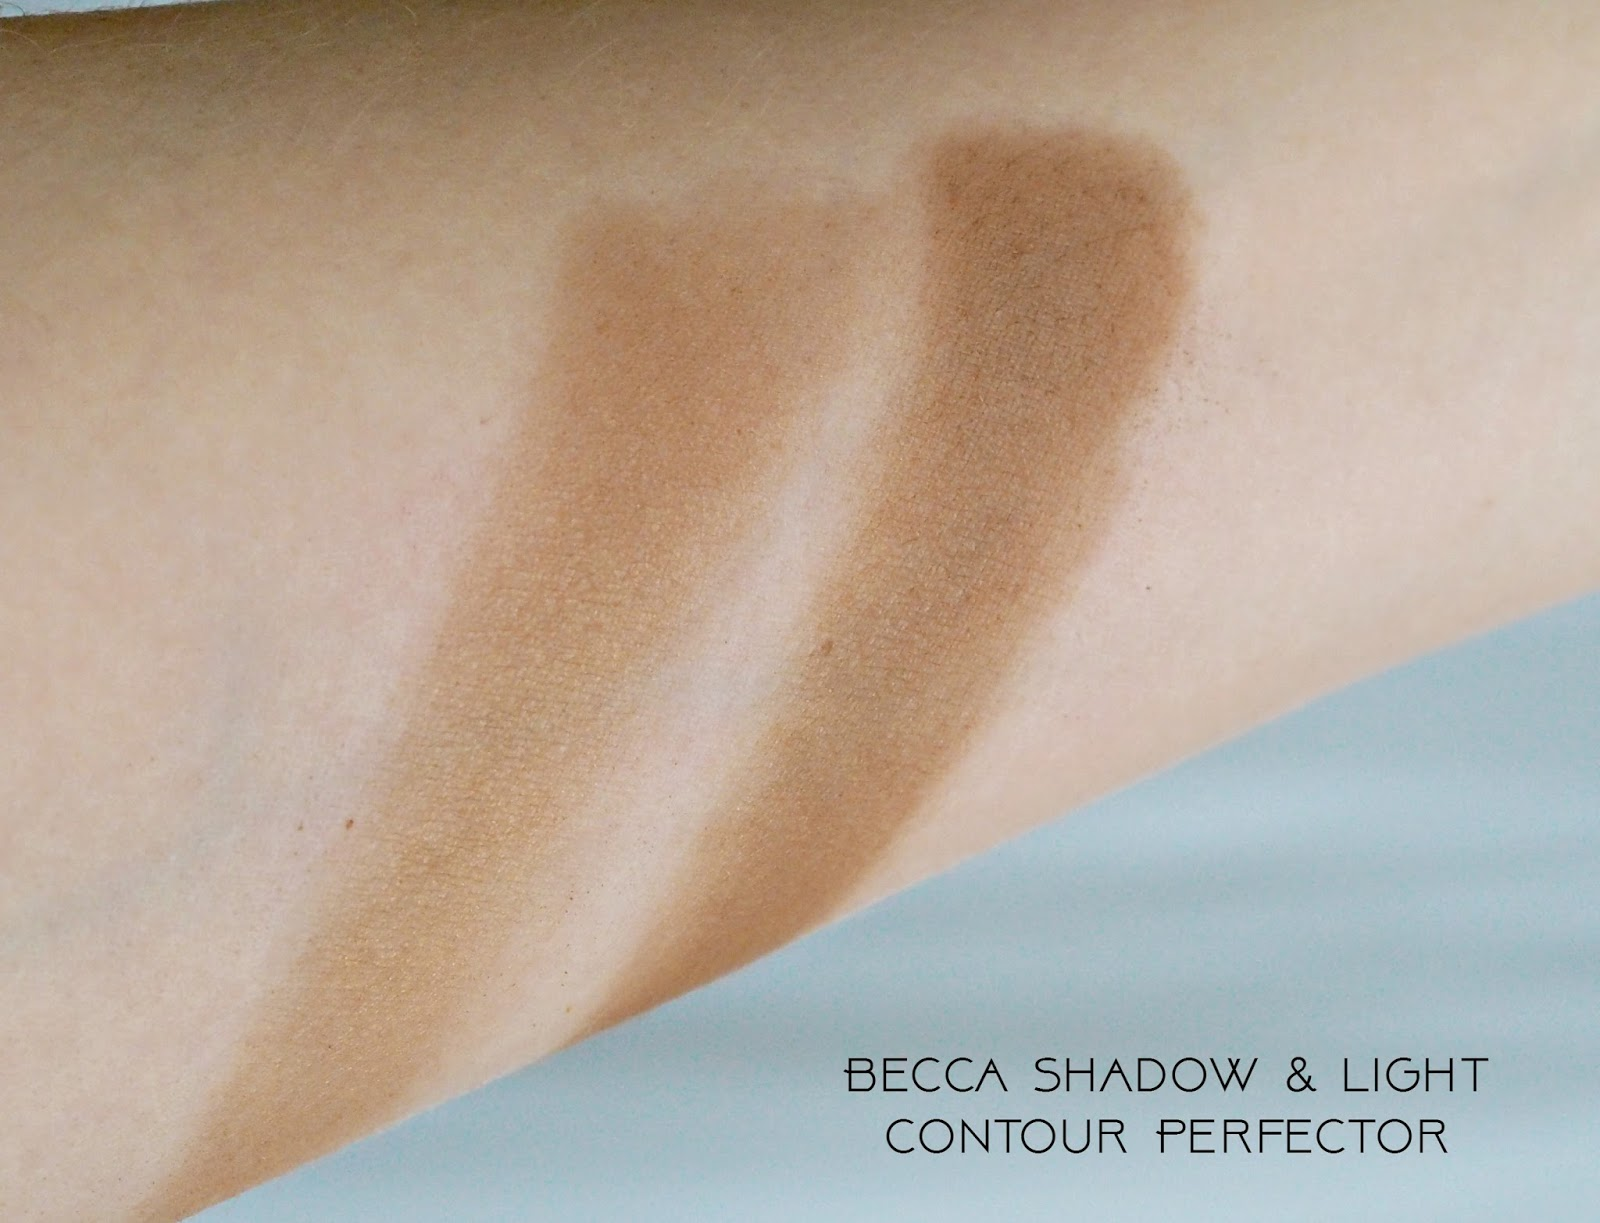 Becca Shadow & Light Contour Perfector, swatches